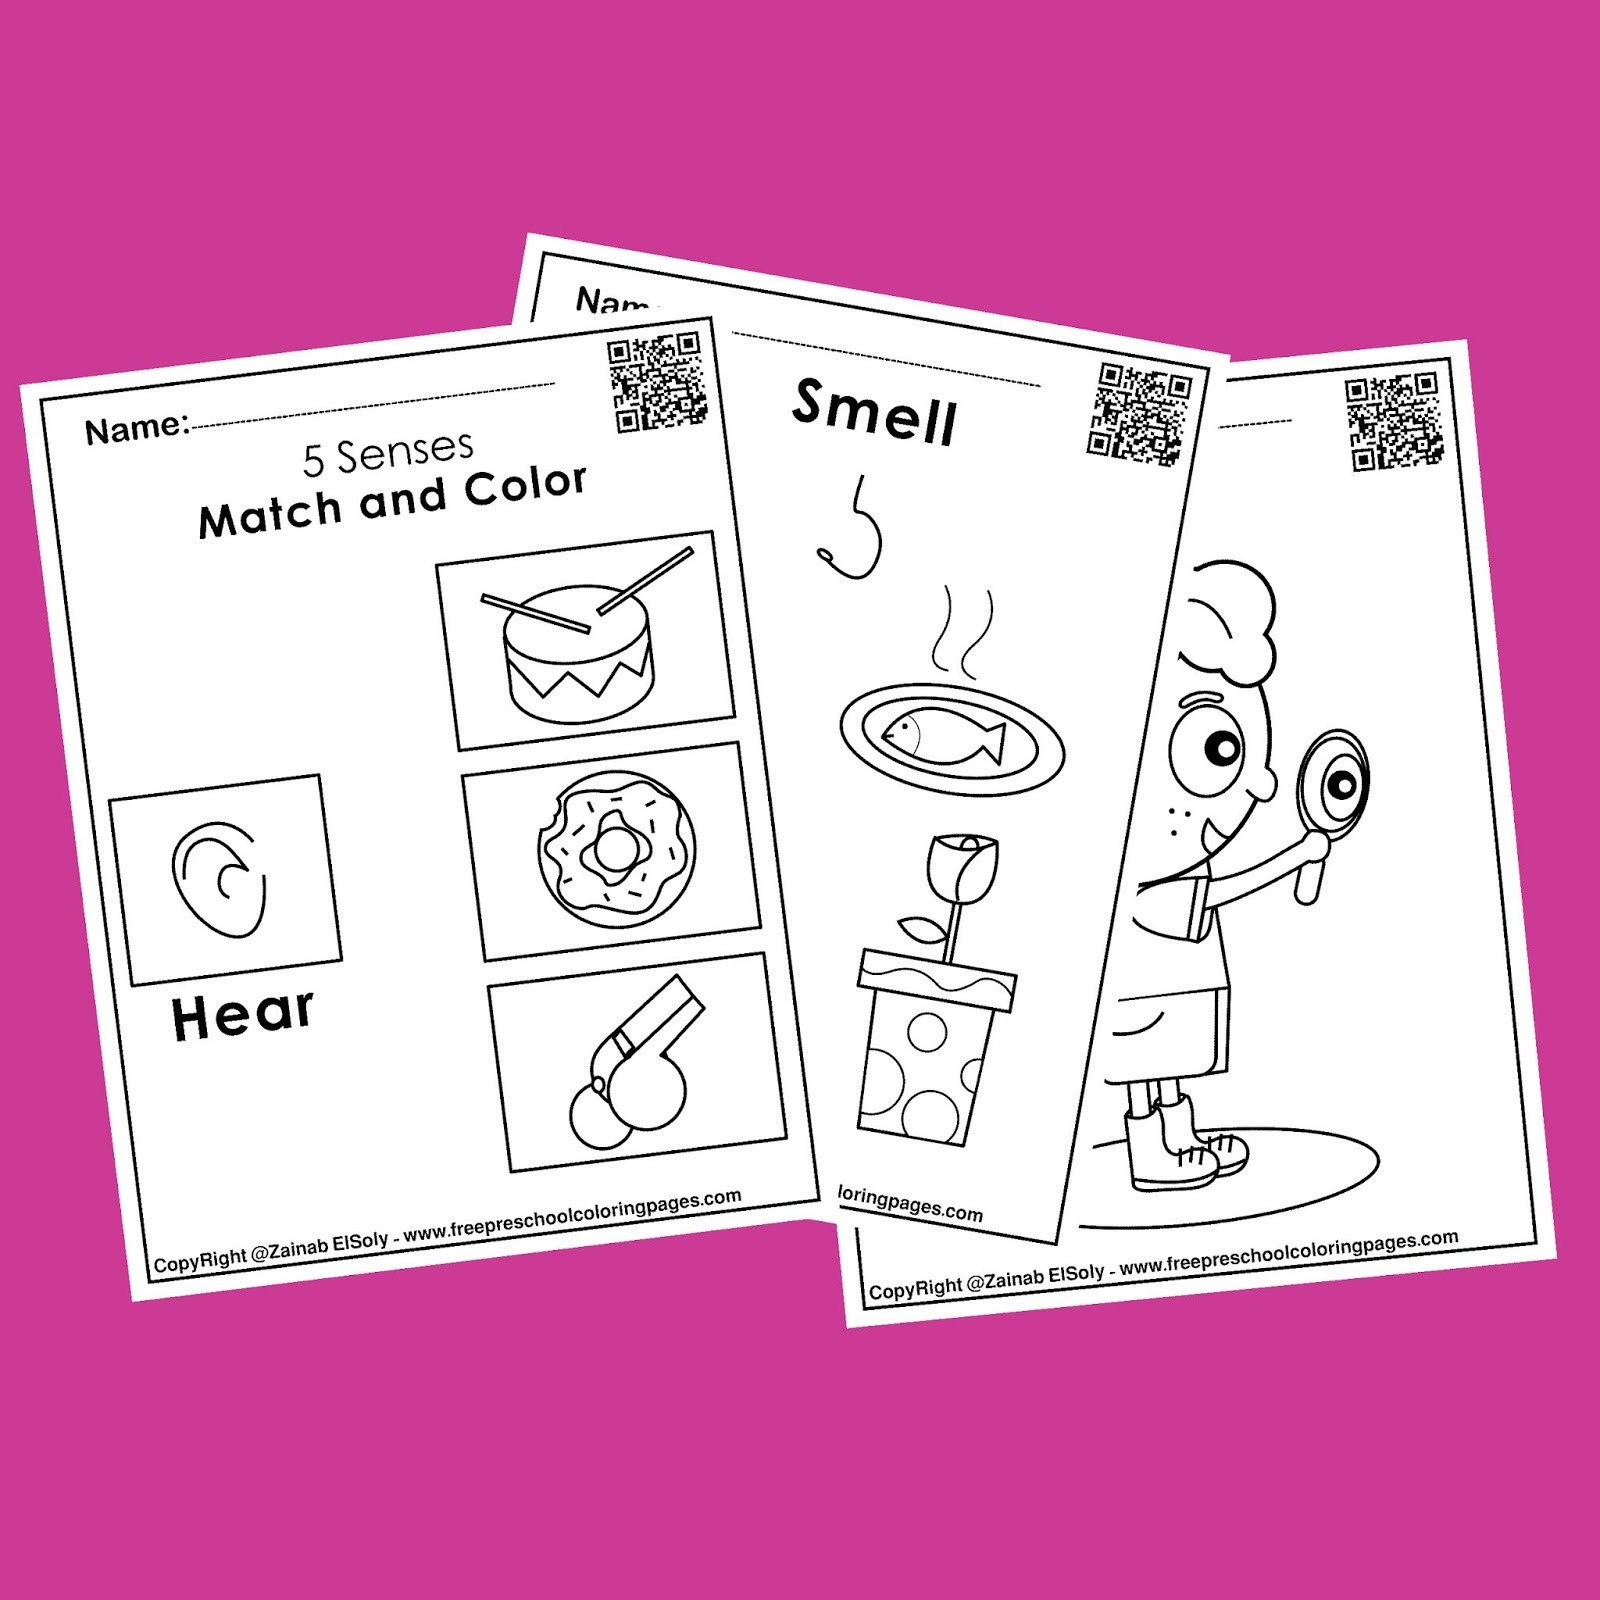 Five Senses Worksheets Preschool 5 Senses Free Worksheets Activities for Kids